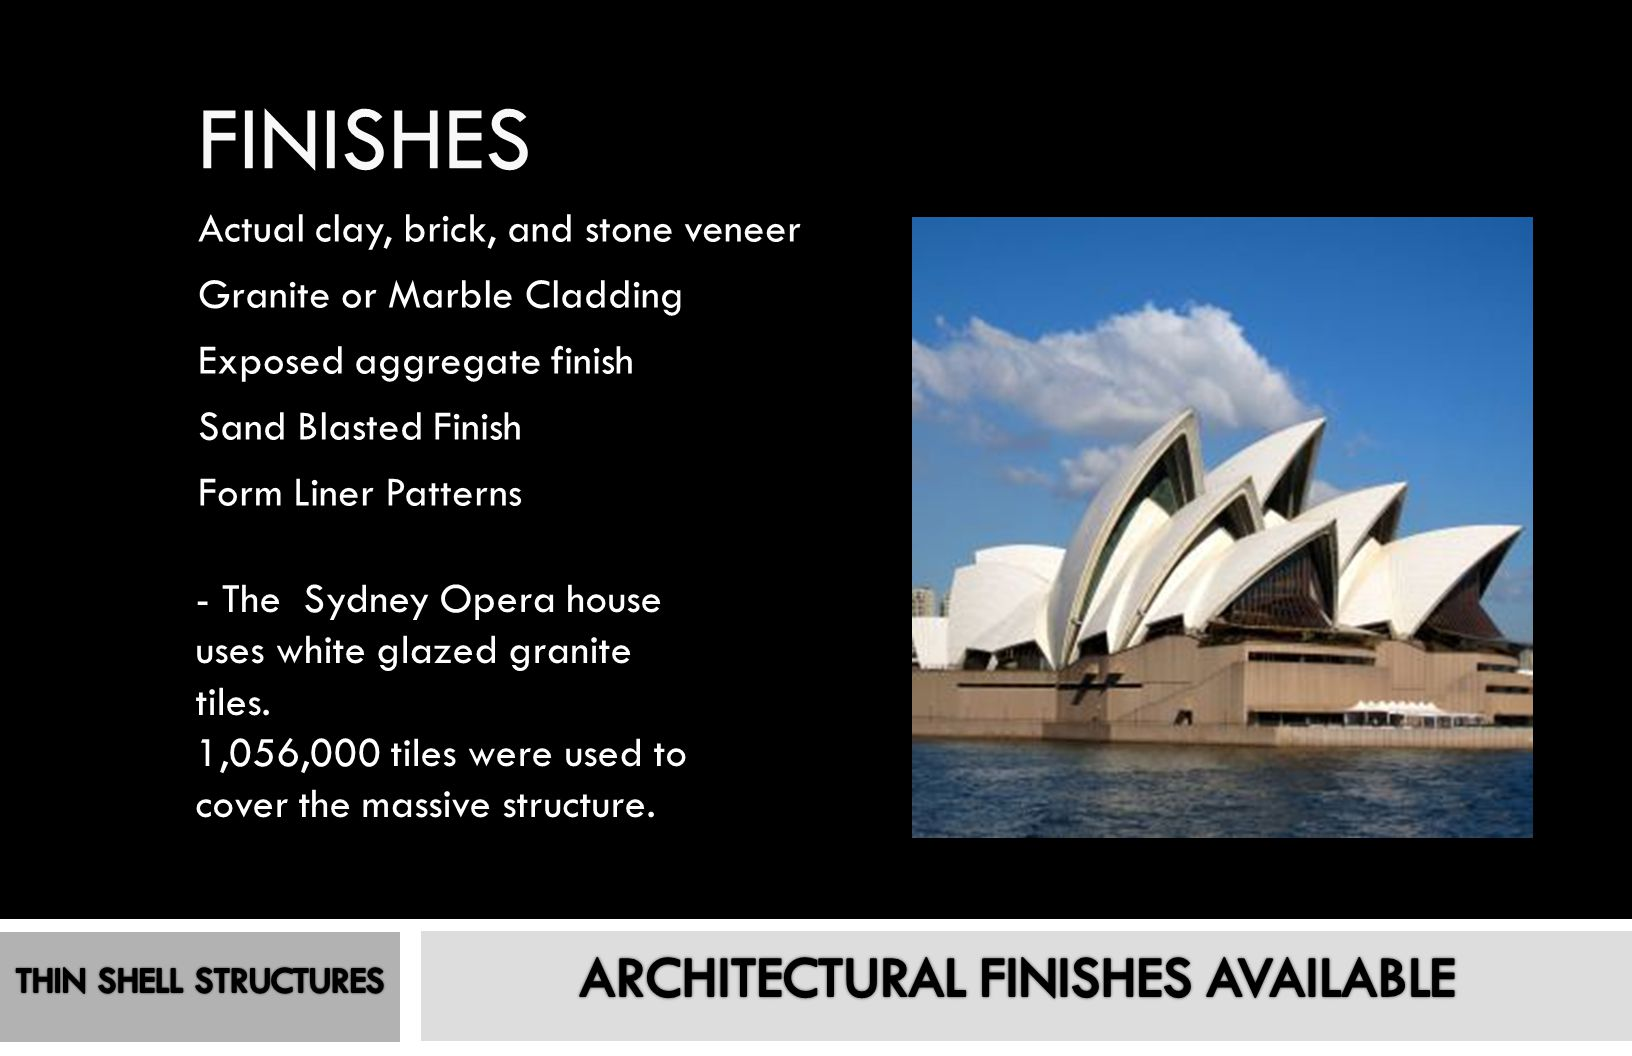 ARCHITECTURAL FINISHES AVAILABLE